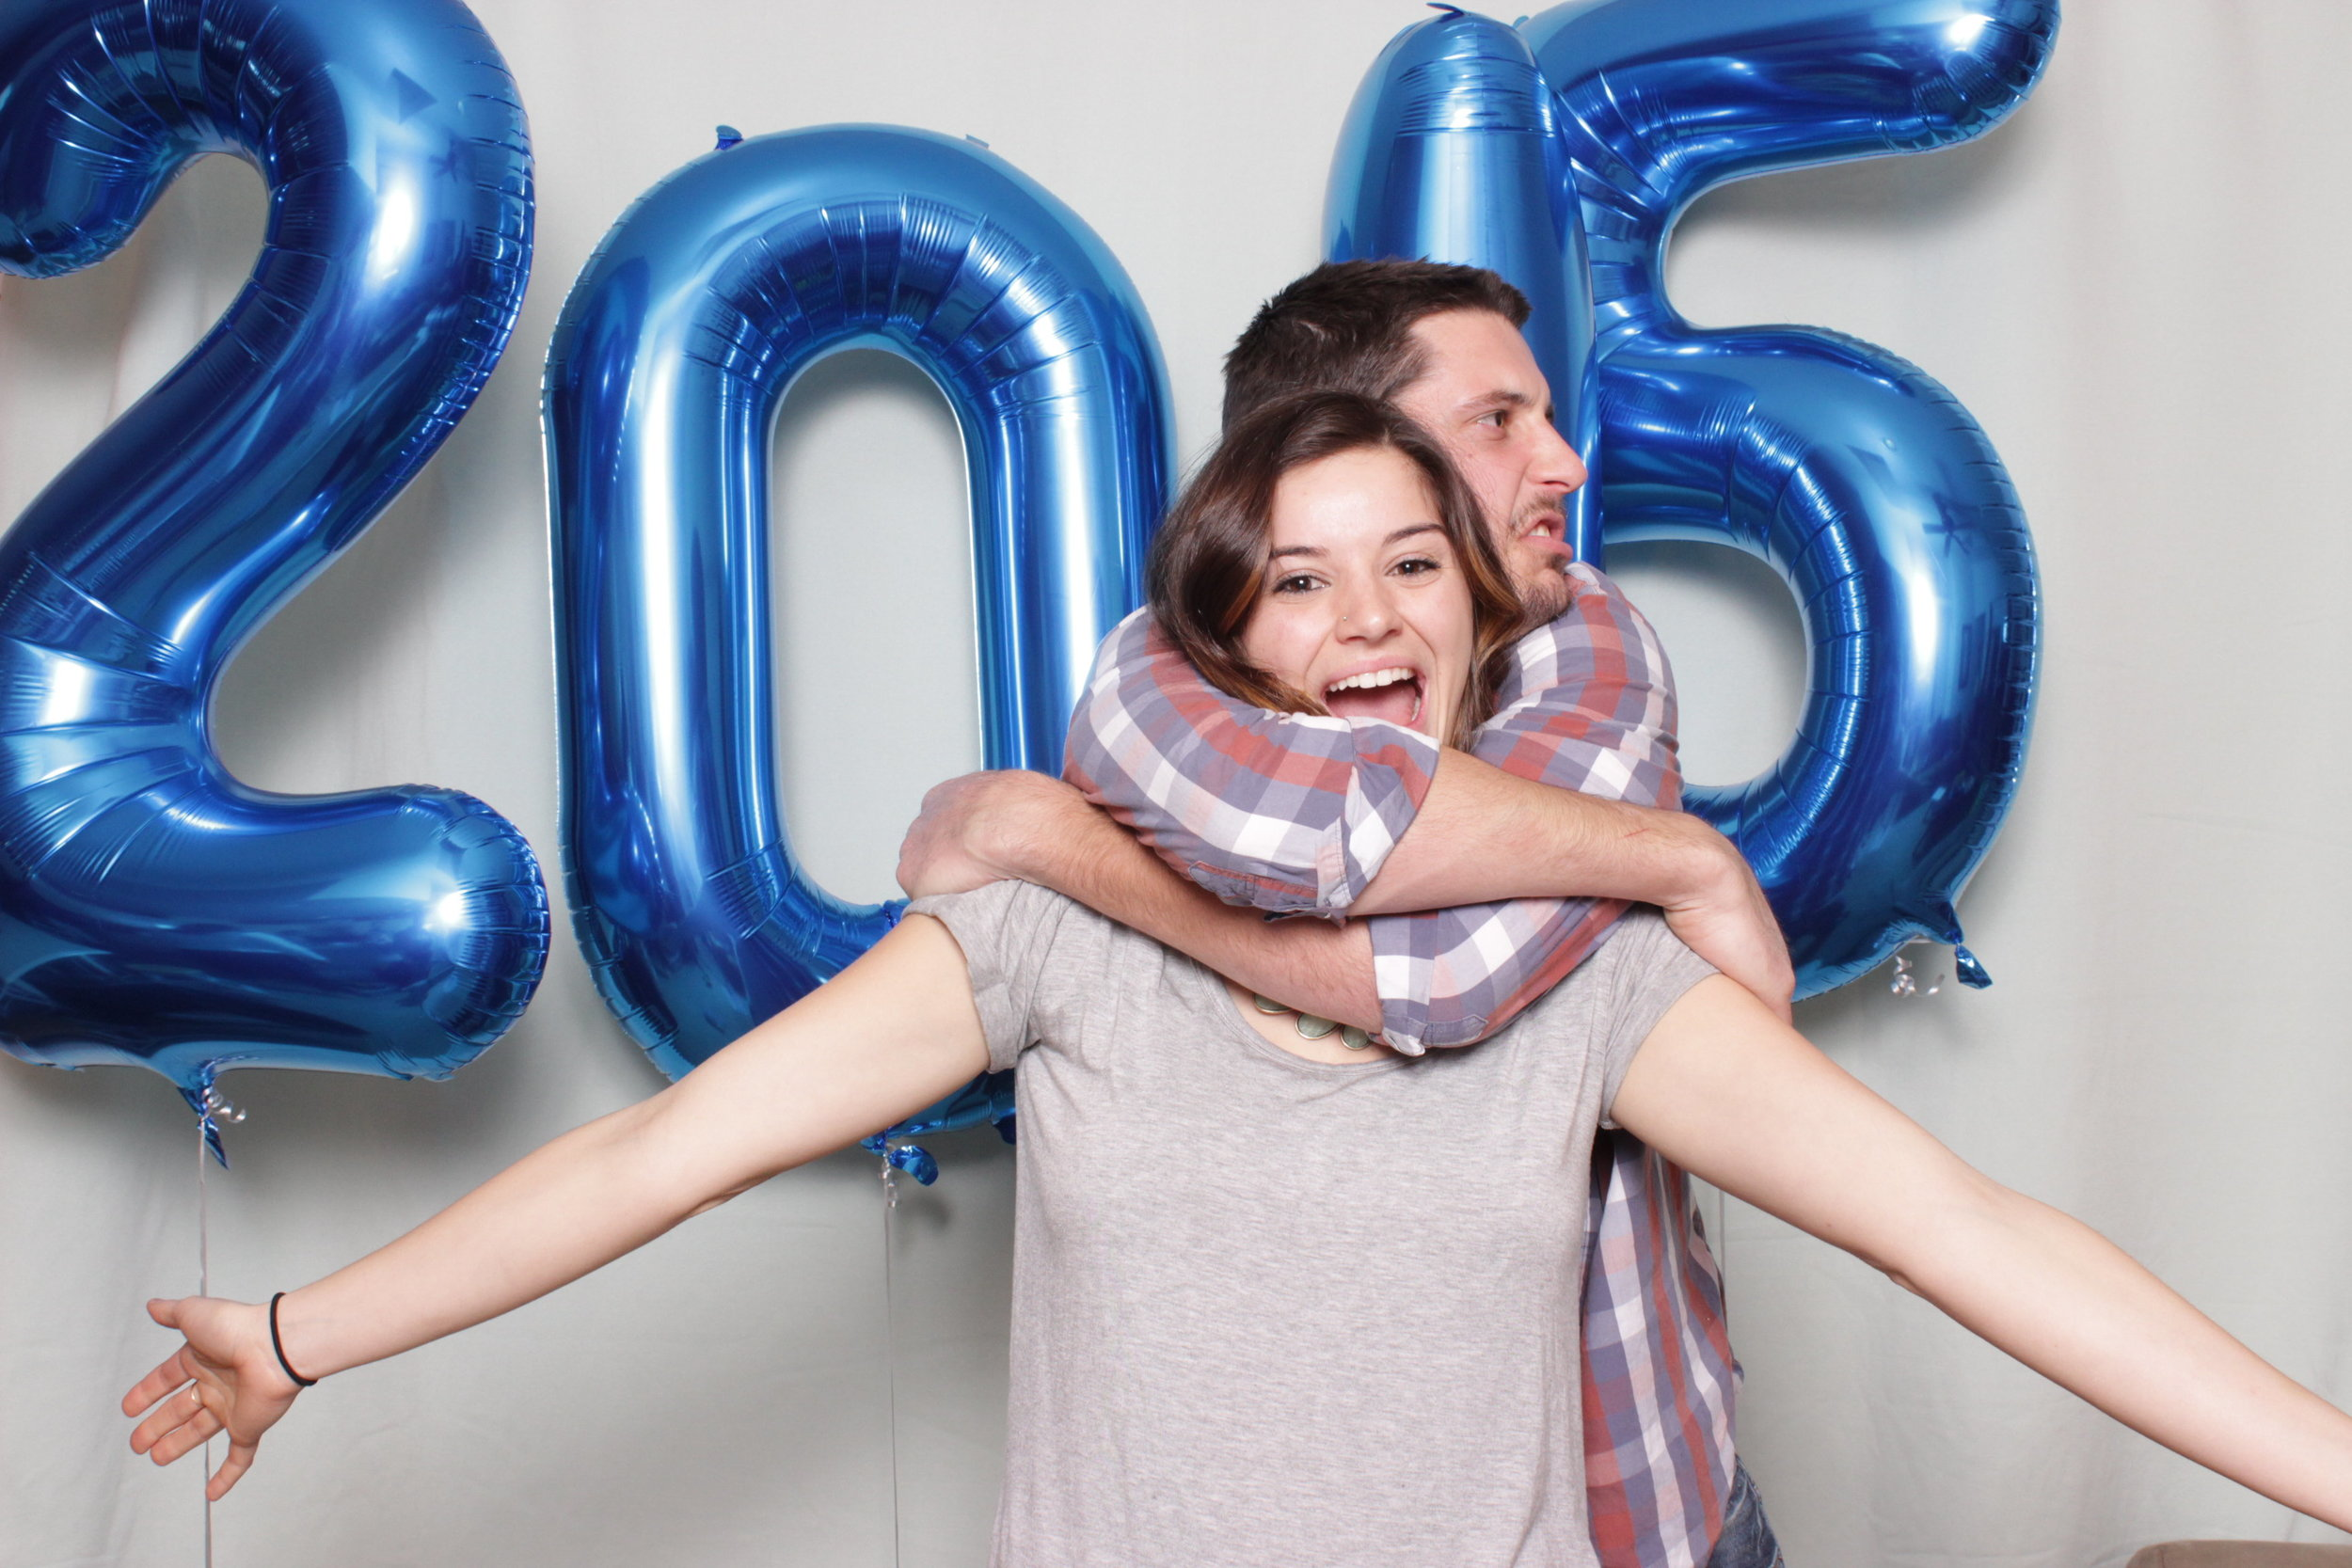 photo-booth-rental-in-chico-california-new-years-party-fun-hug